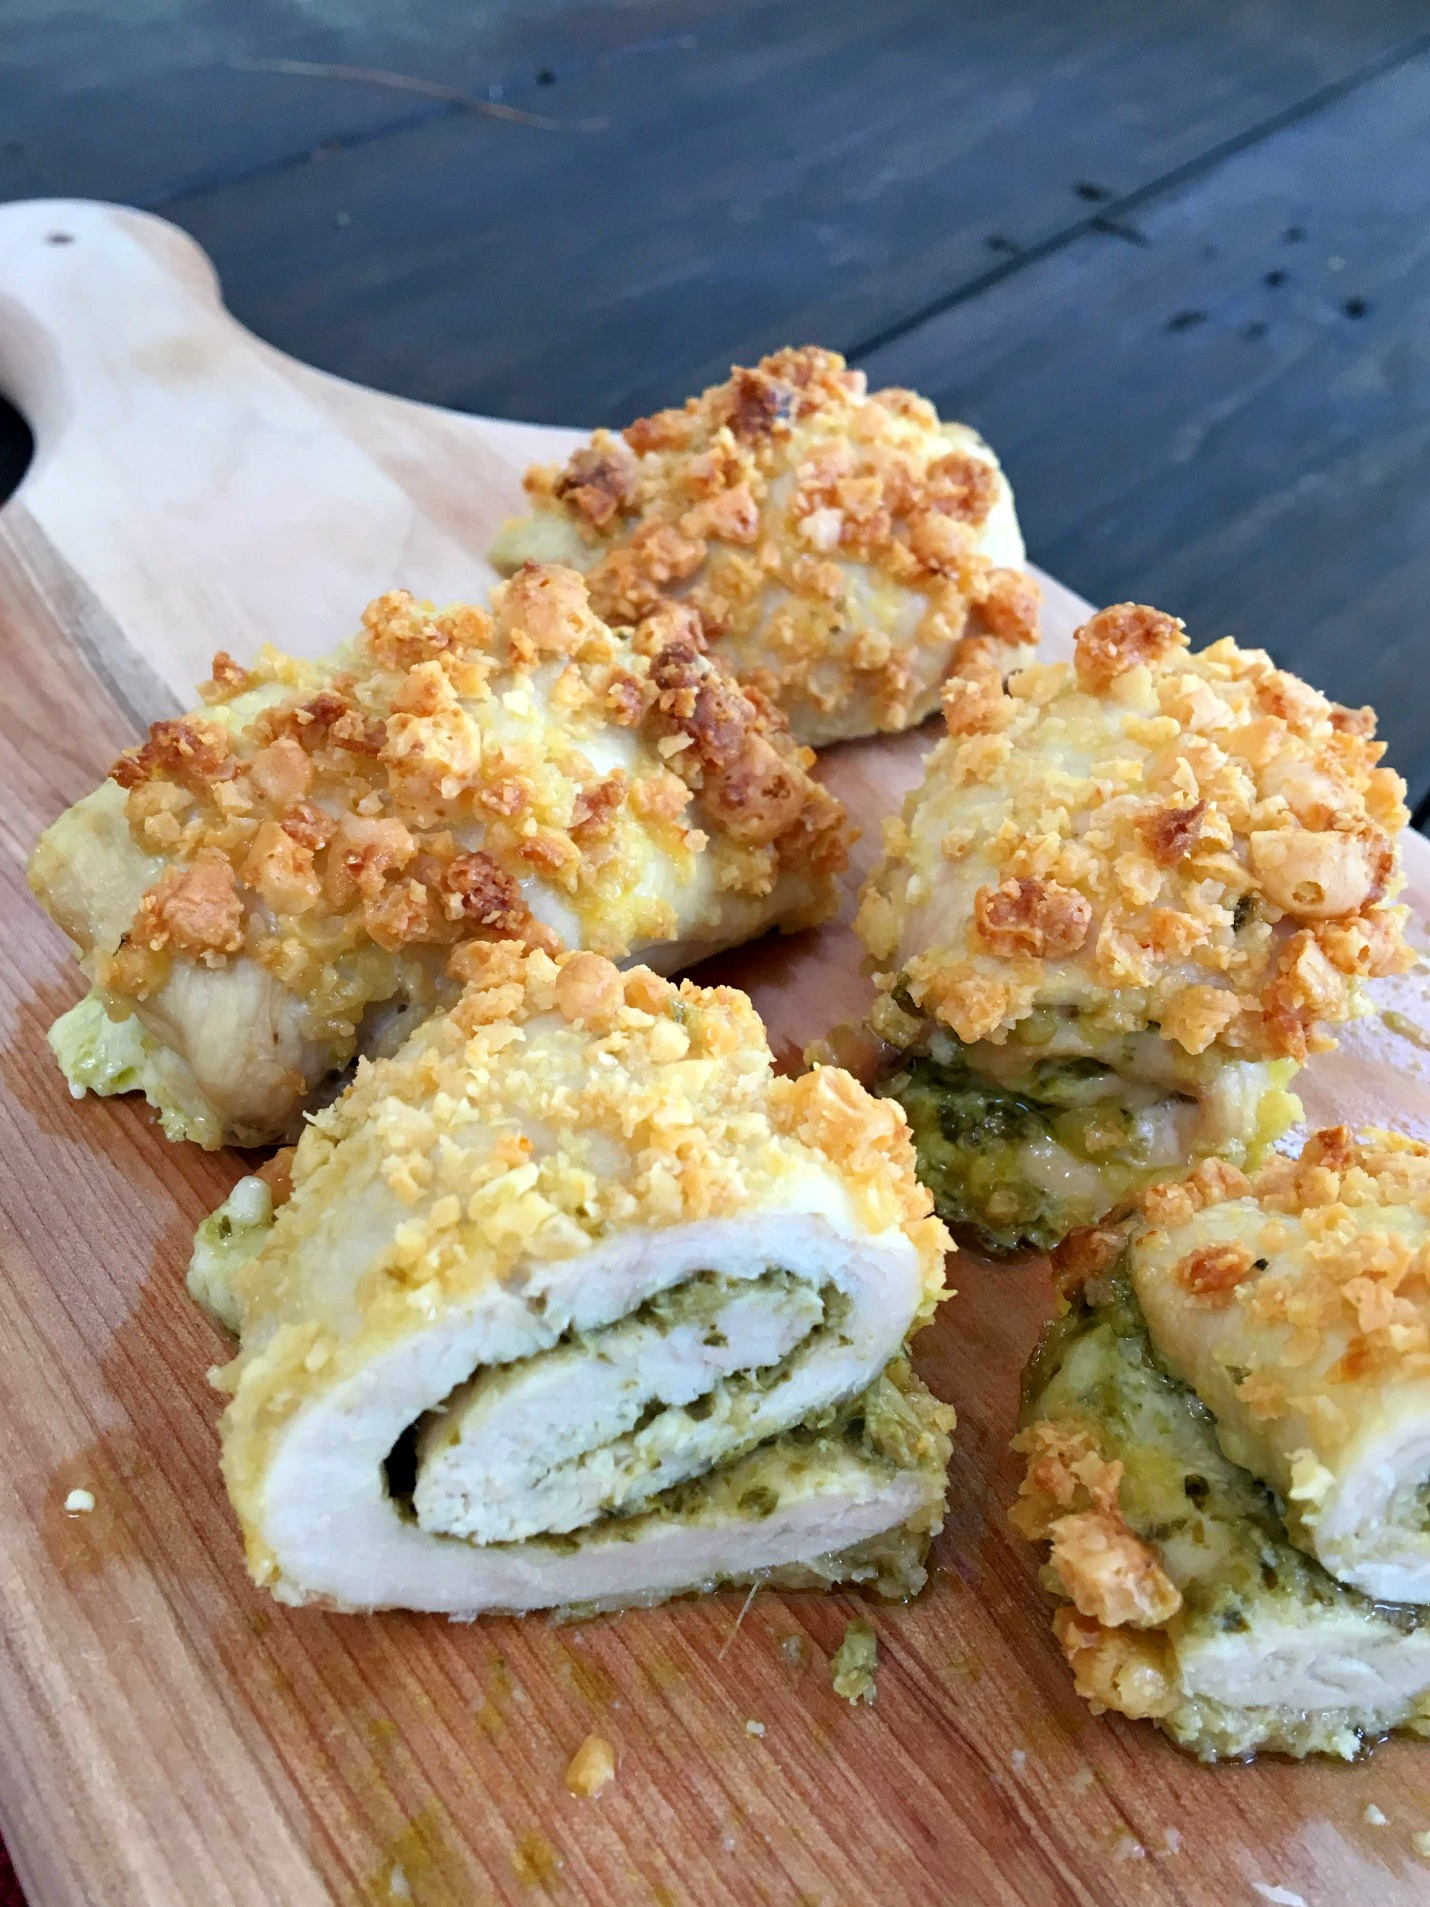 Chicken roll-ups cut in half on a wooden cutting board